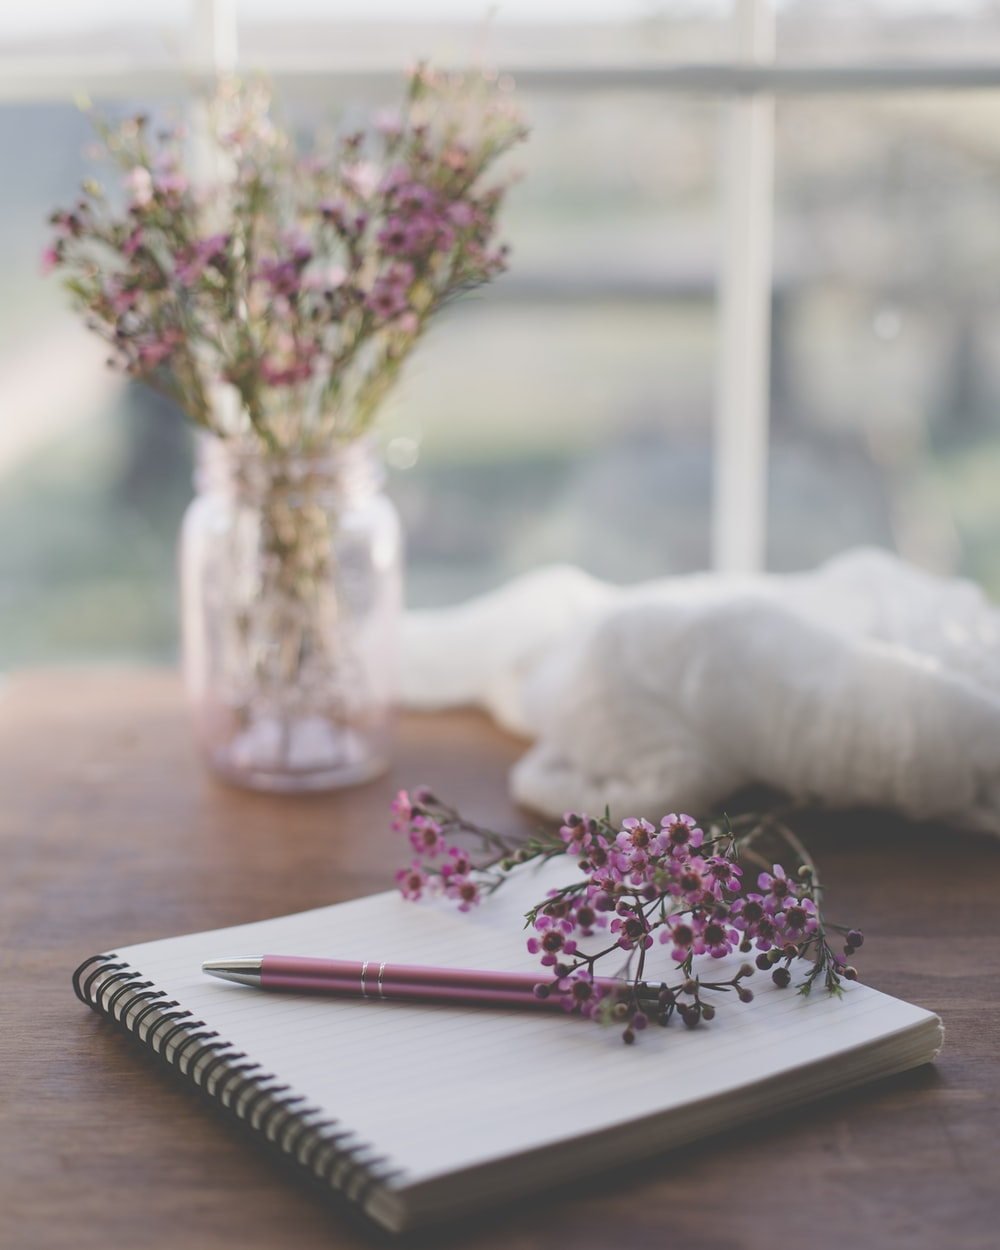 shallow focus photo of purple flowers on white spiral notebook